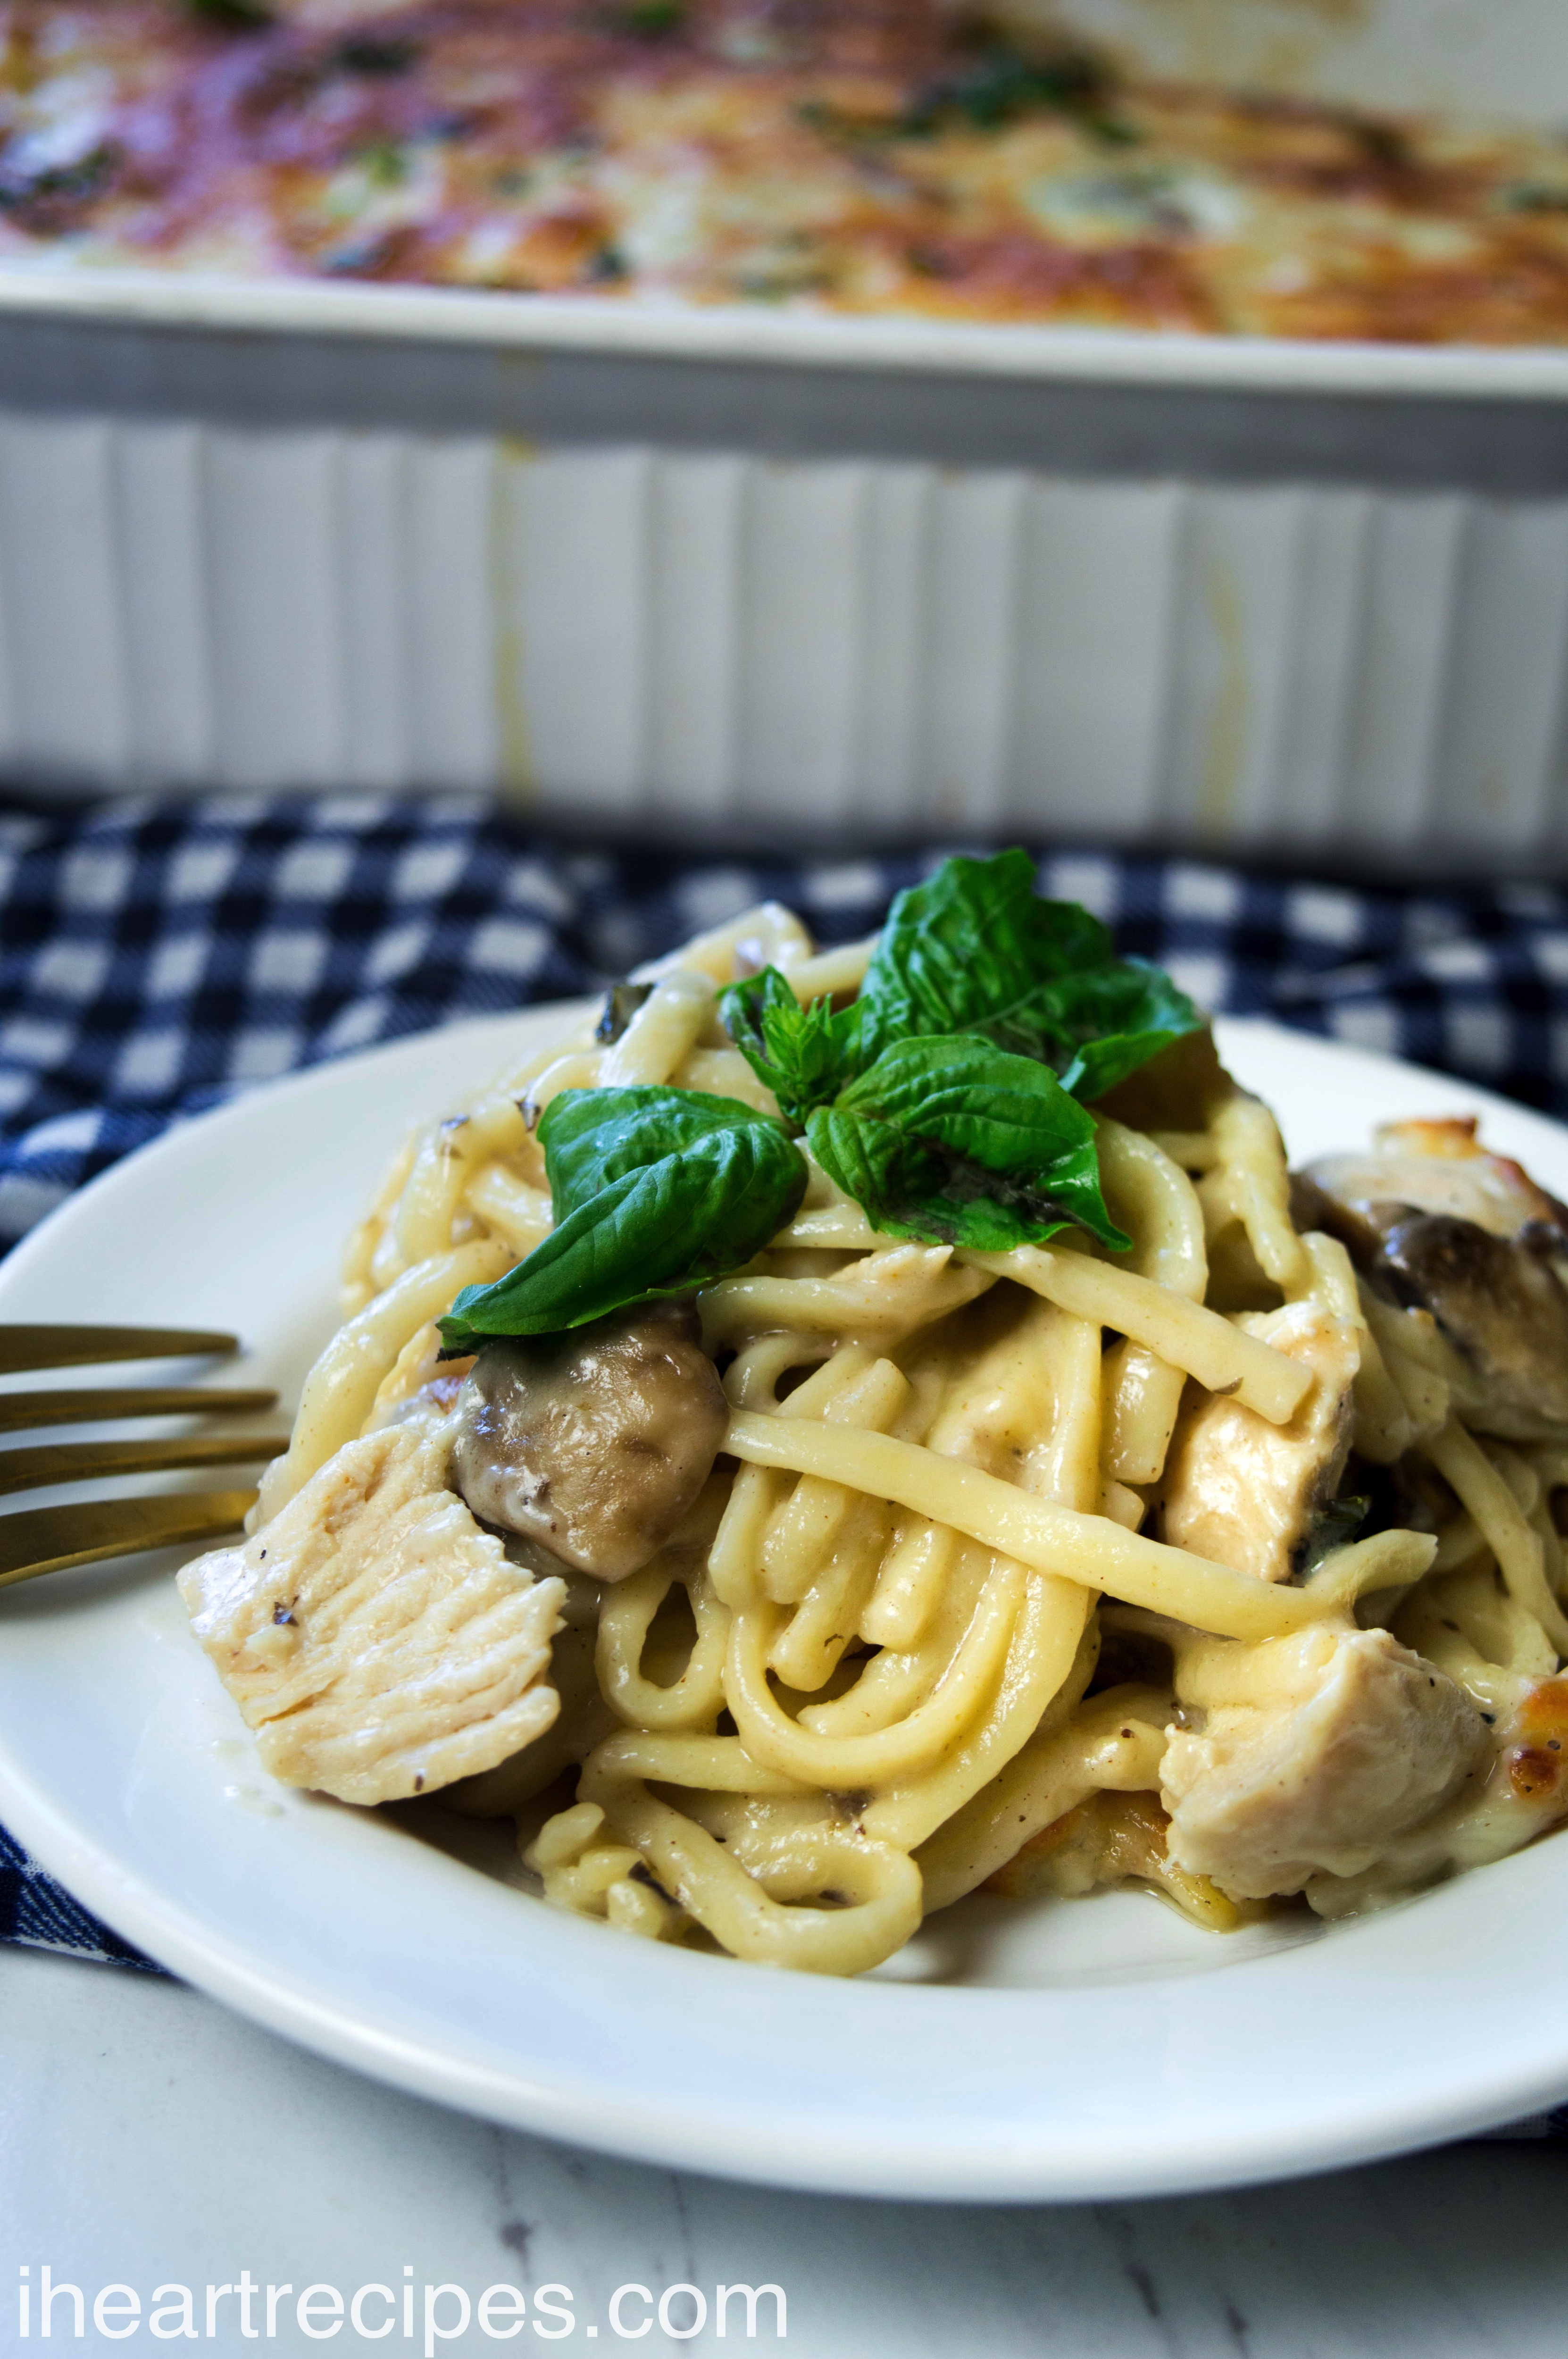 This easy pasta dish can be made with leftover chicken to cut down on cooking time